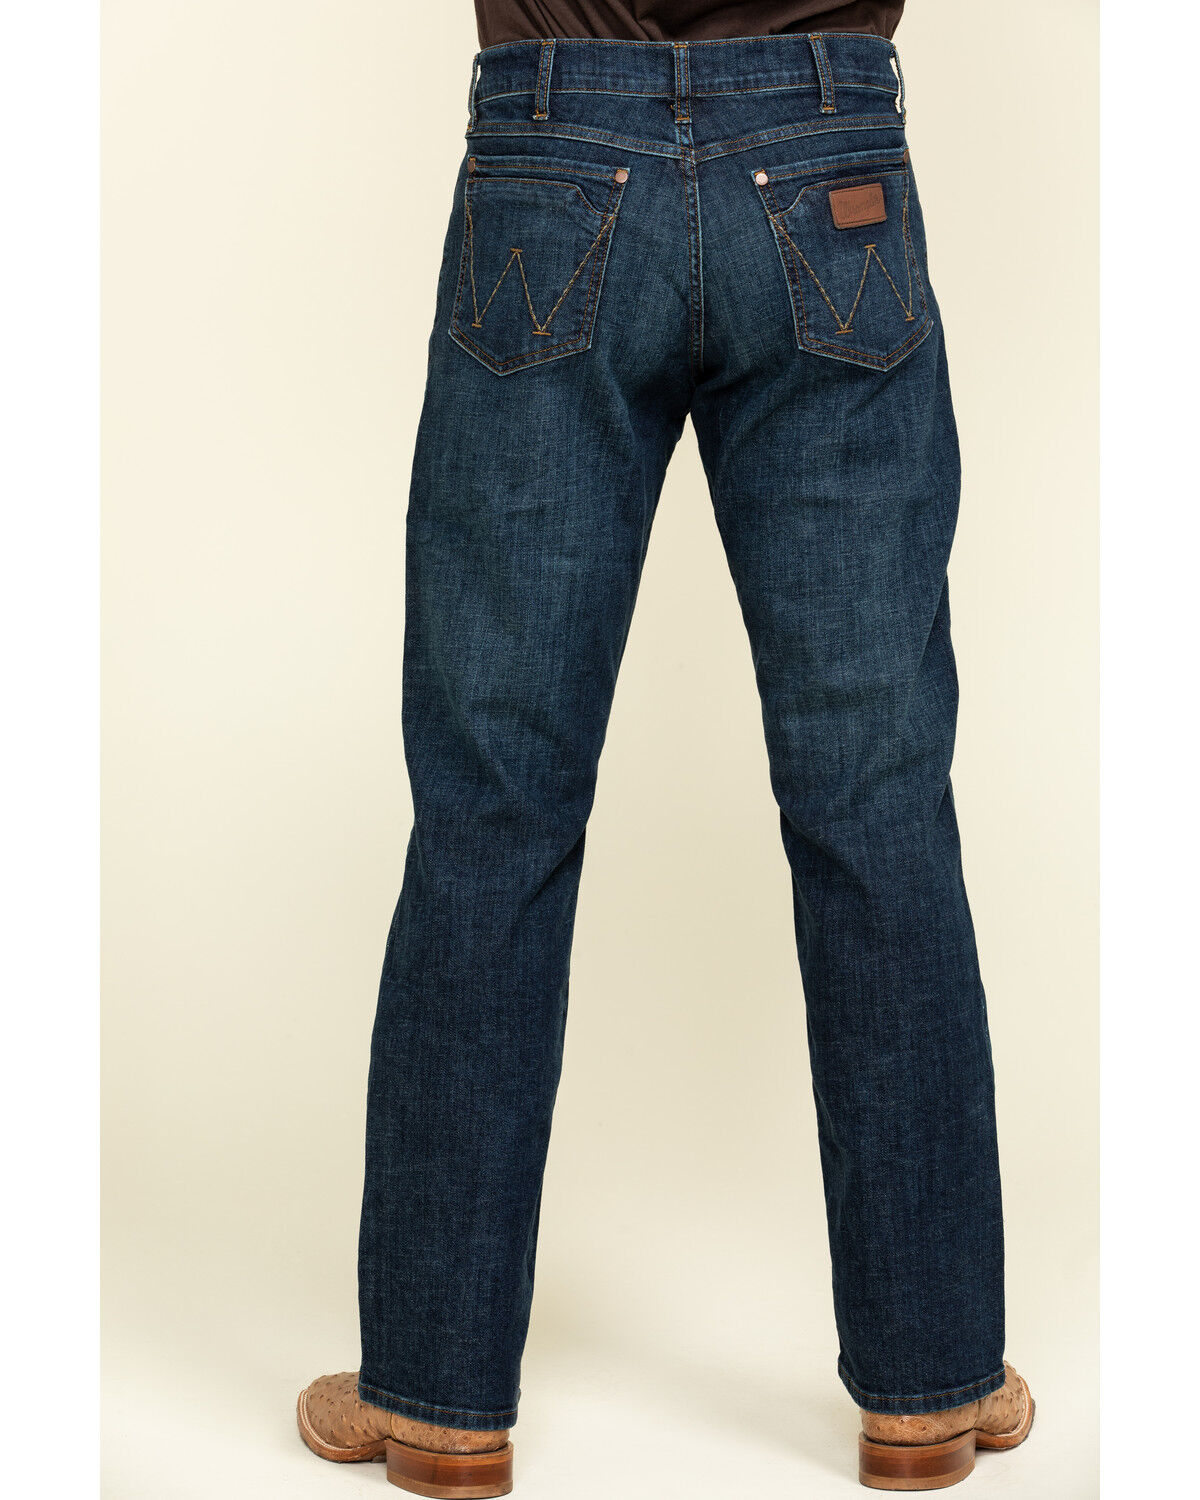 Phillips Dark Relaxed Bootcut Jeans